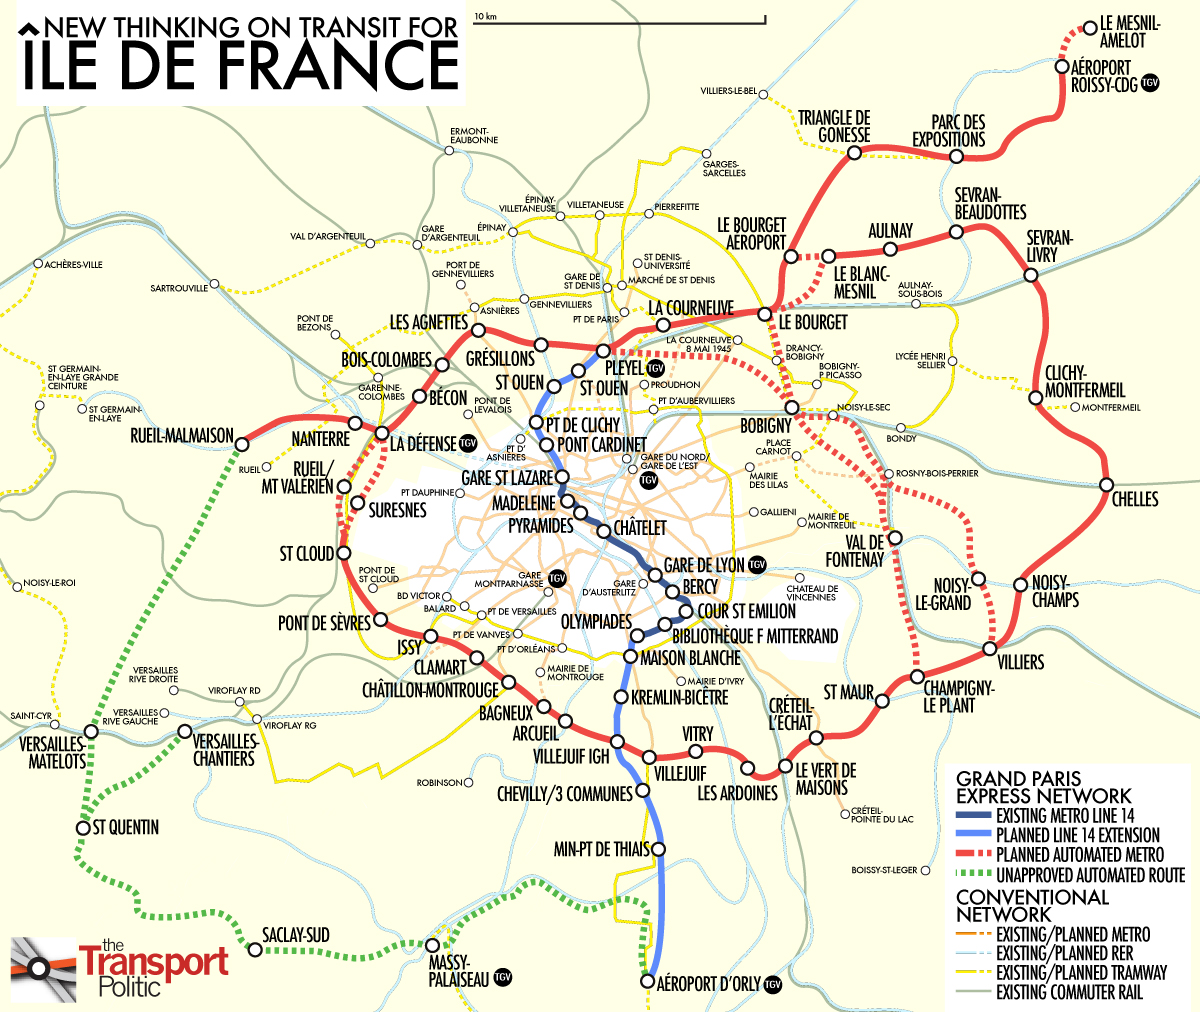 A Grander Paris Through a Rapid Circumferential Metro The